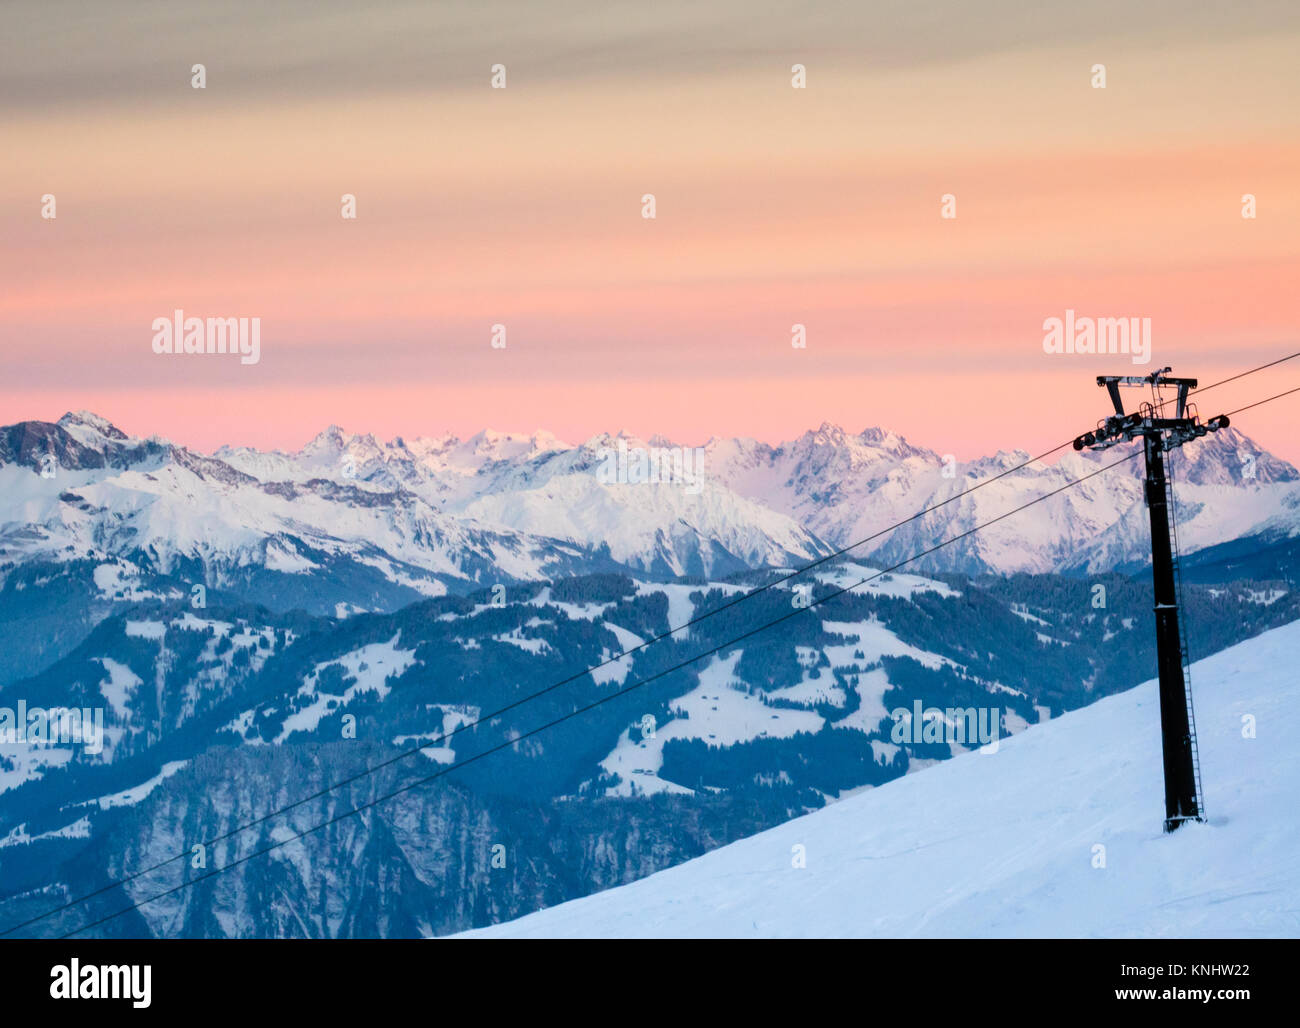 winter landscape in the Swiss Alps with a ski resort and chairlift in the foreground under a beautiful evening sky - Stock Image